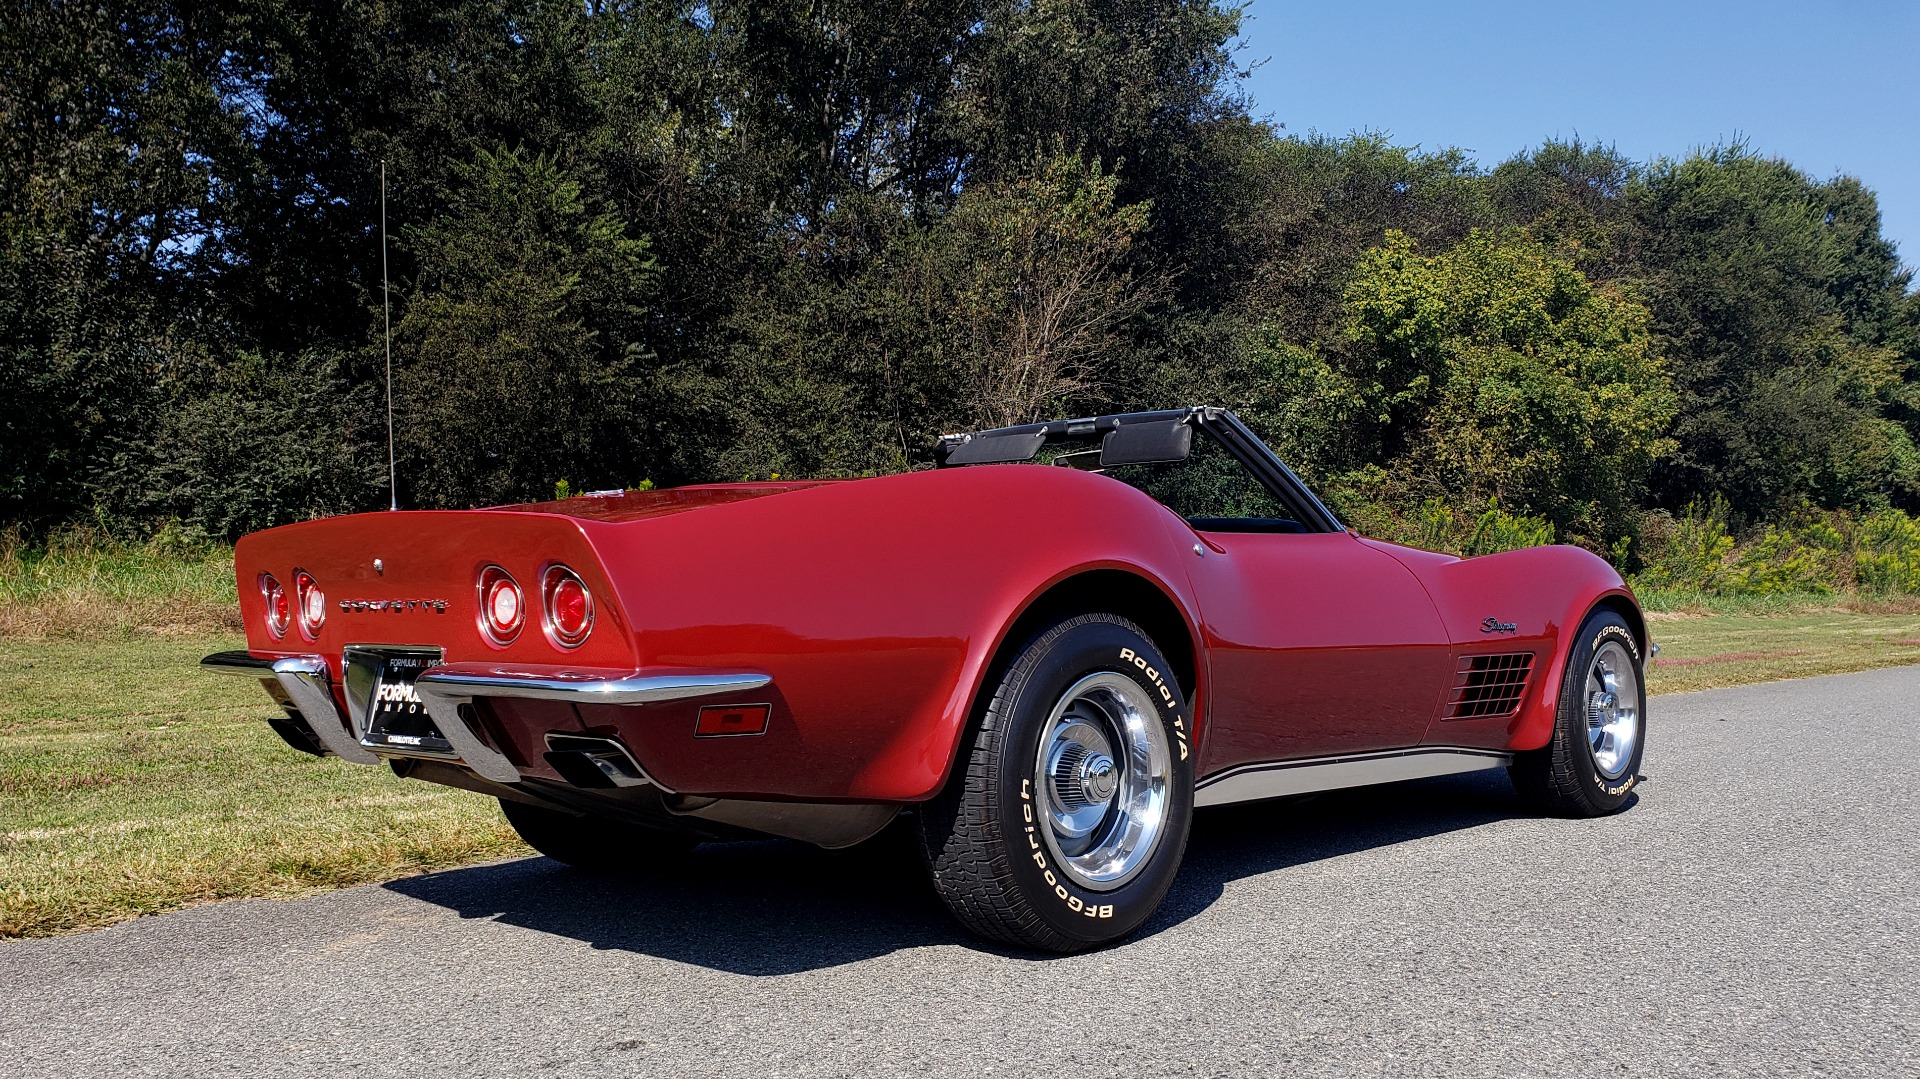 Used 1970 Chevrolet CORVETTE CONVERTIBLE / 454CI V8 / AUTO / NEW BLACK TOP / NUMBERS MATCH for sale $50,499 at Formula Imports in Charlotte NC 28227 8